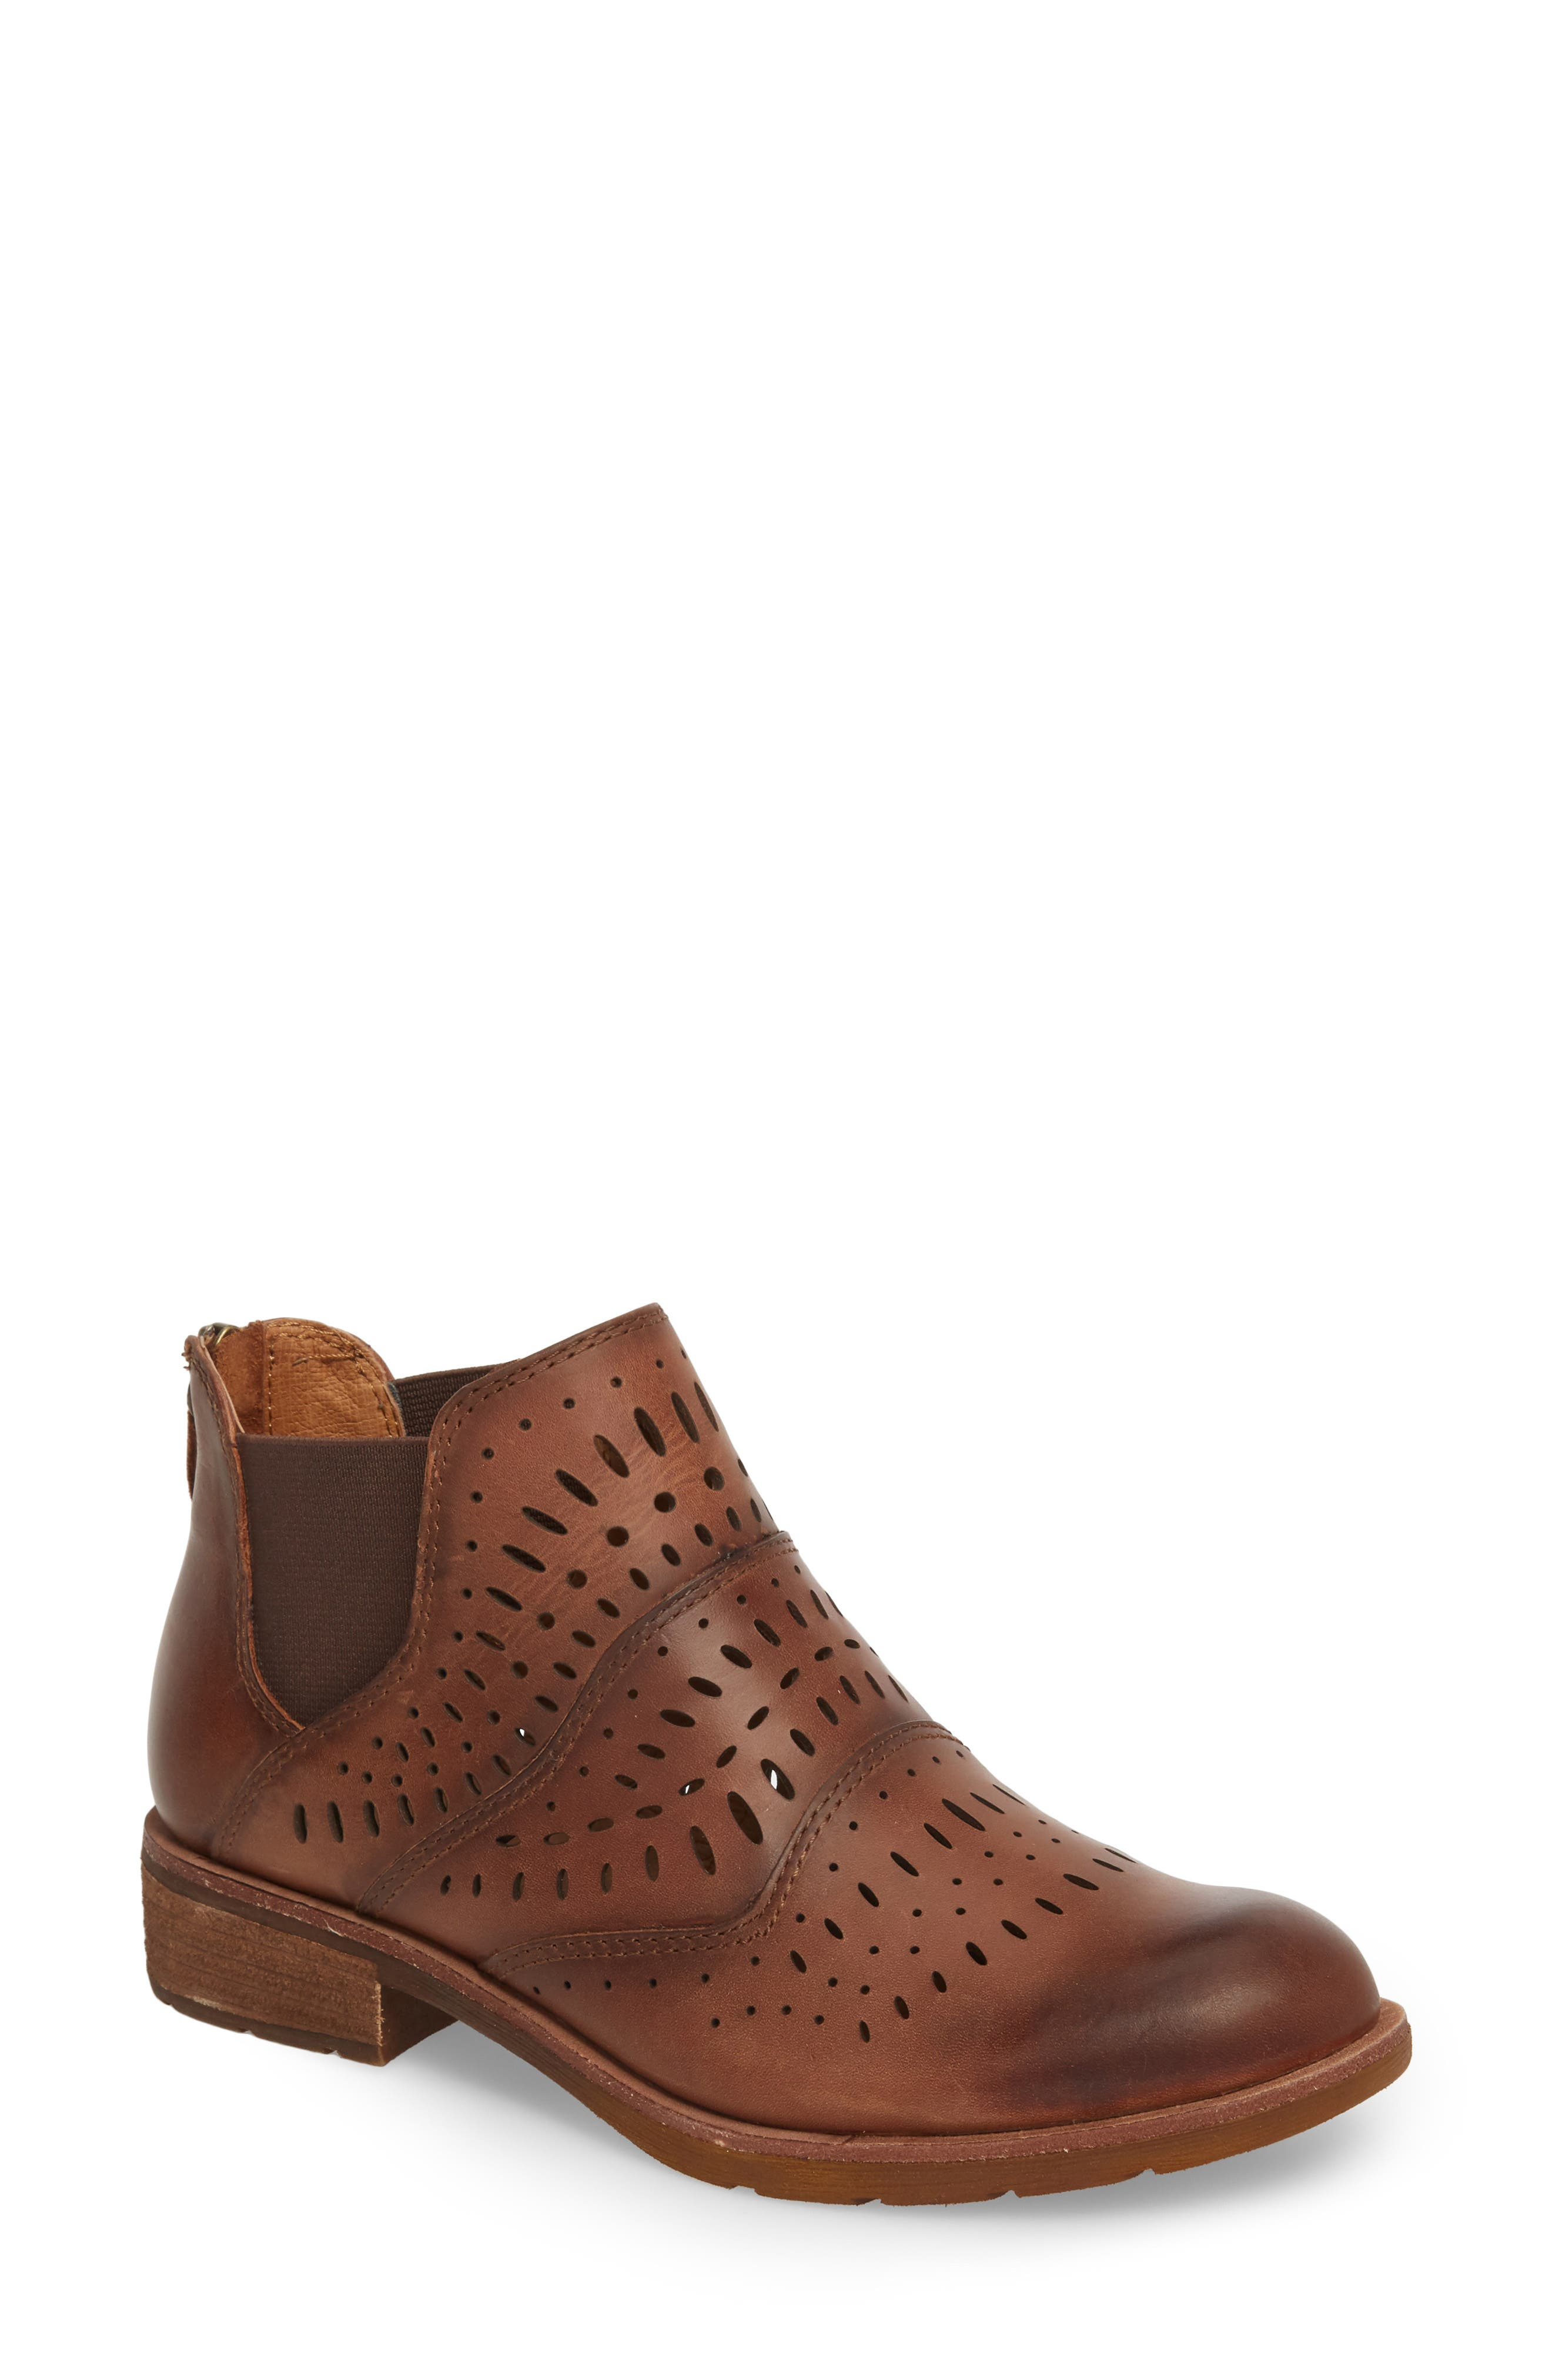 Sofft Brenley Bootie- Brown